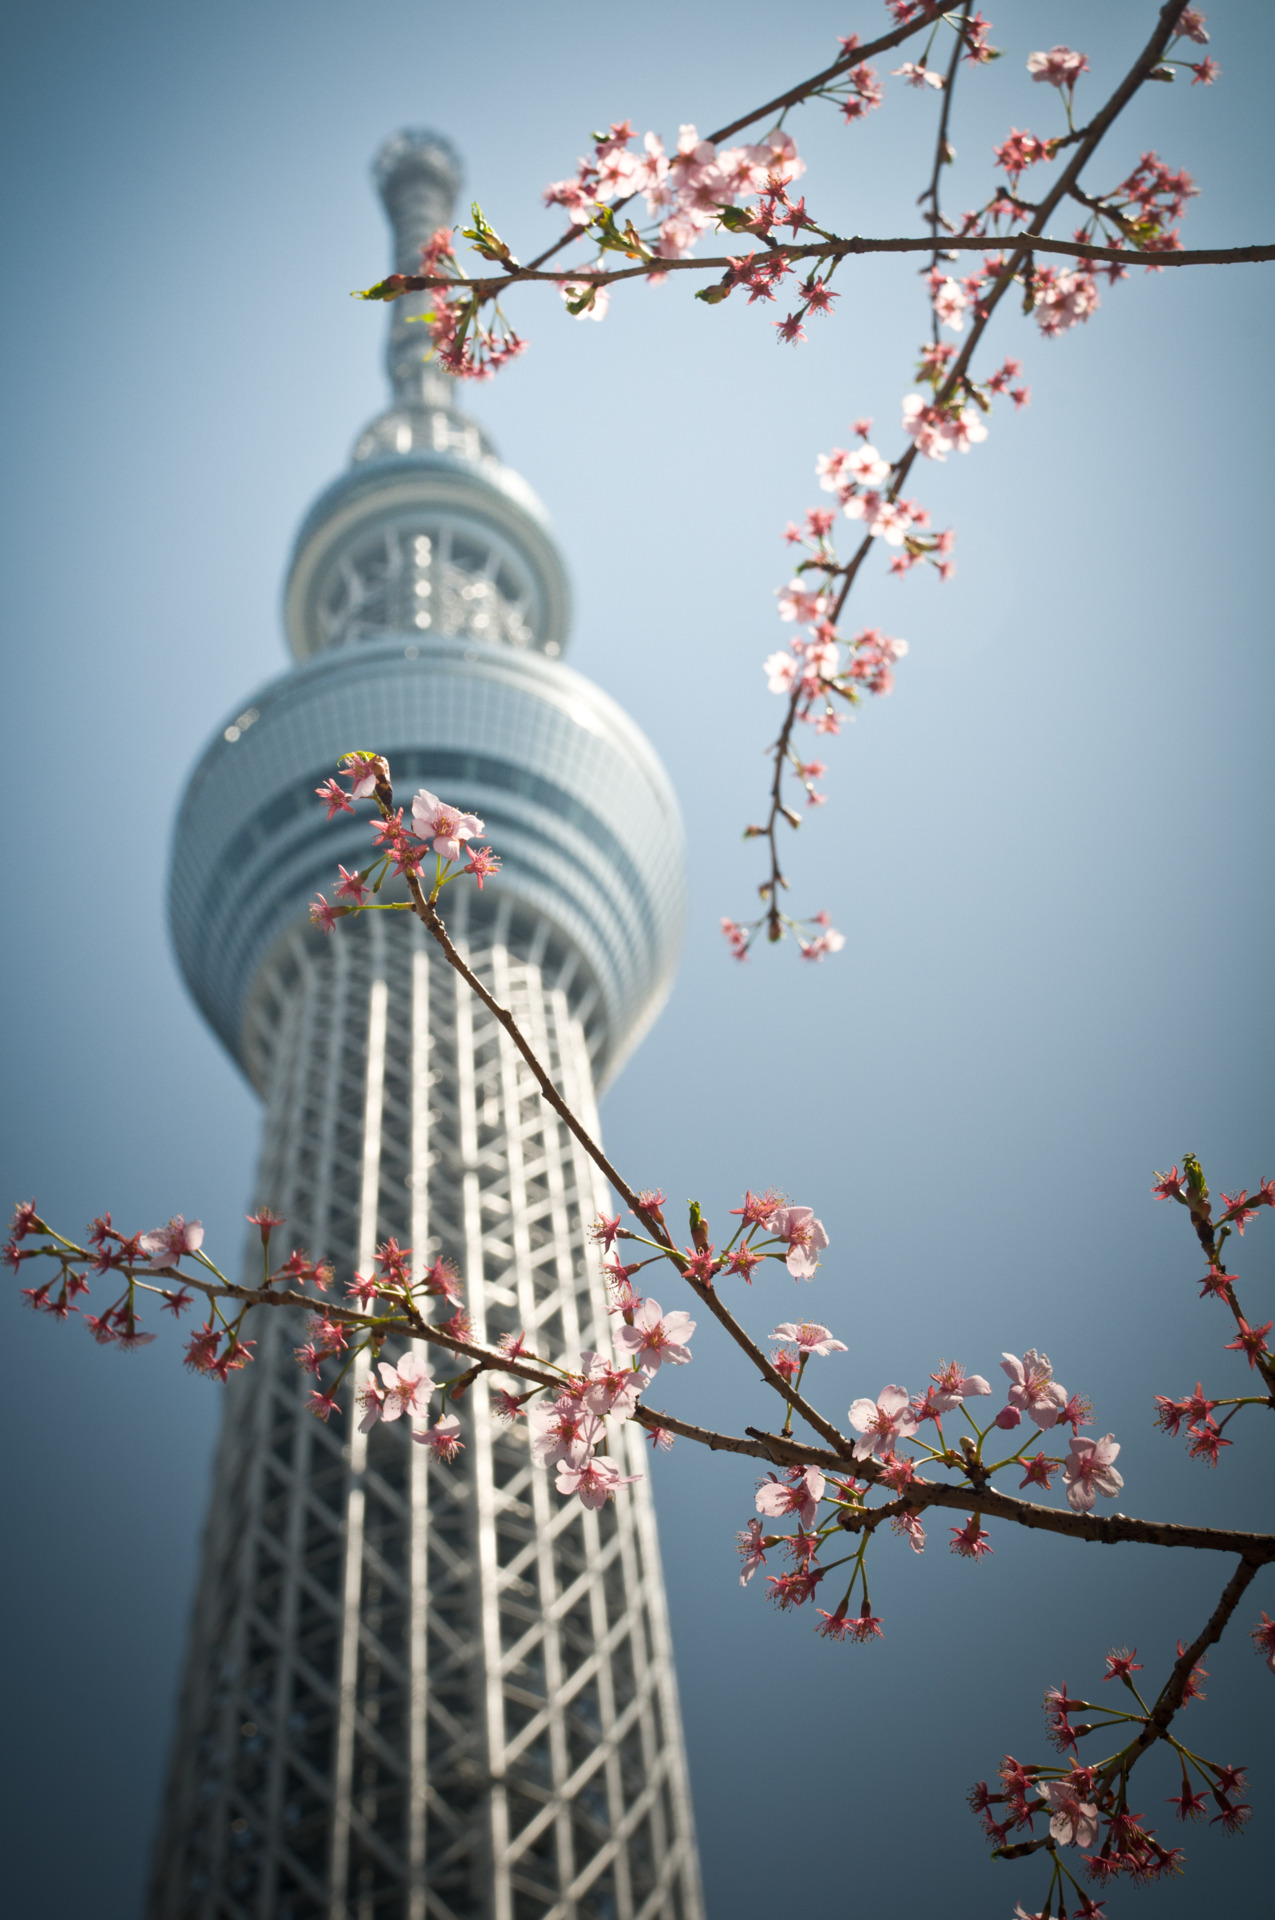 Tokyo Sky Tree! This gem claims the title of the 2nd tallest structure in the world.